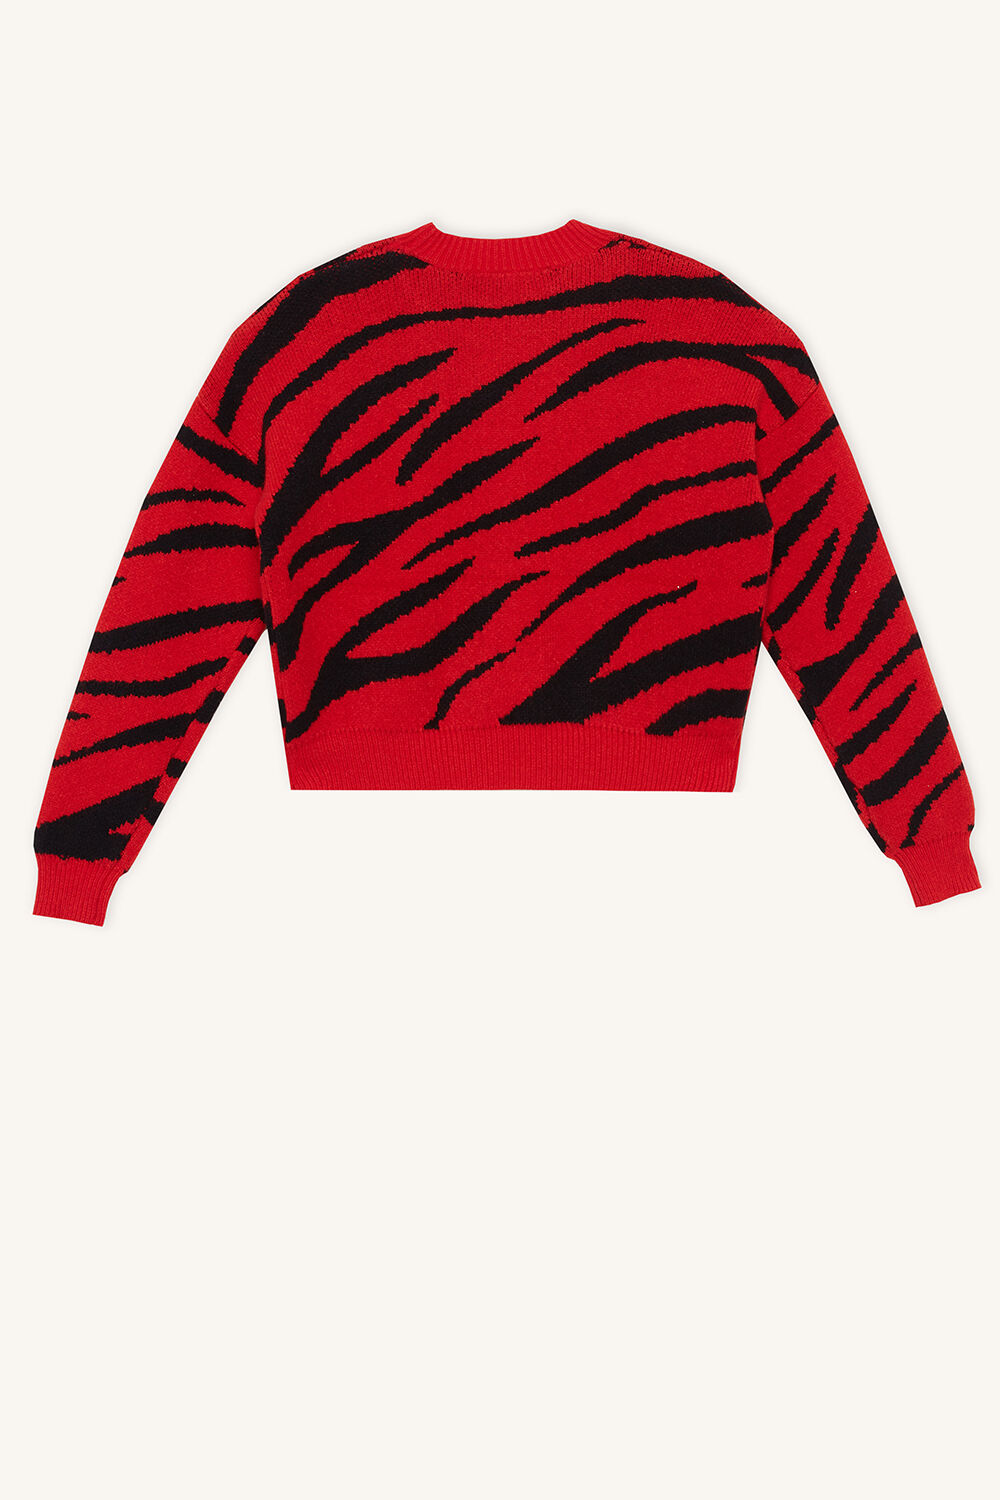 RED ZEBRA KNIT JUMPER in colour RIBBON RED